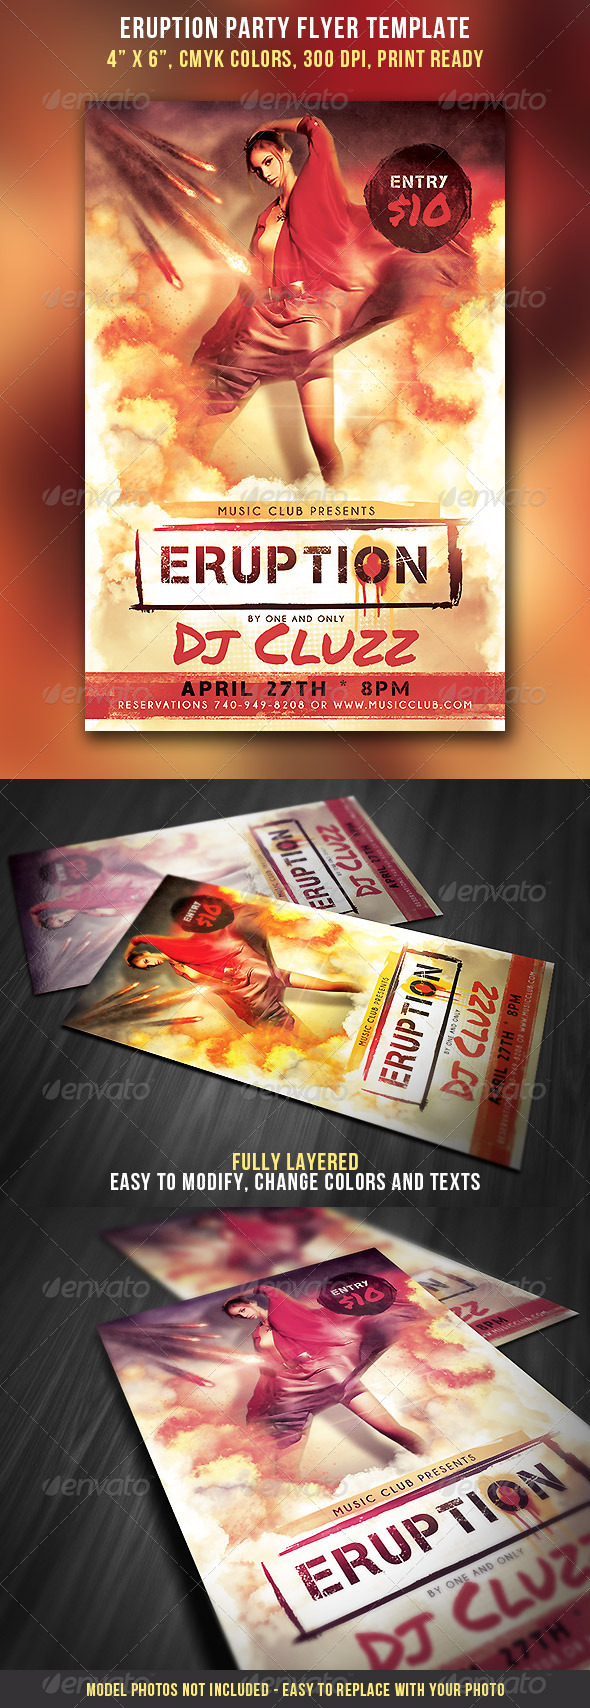 Eruption Party Flyer - Clubs & Parties Events